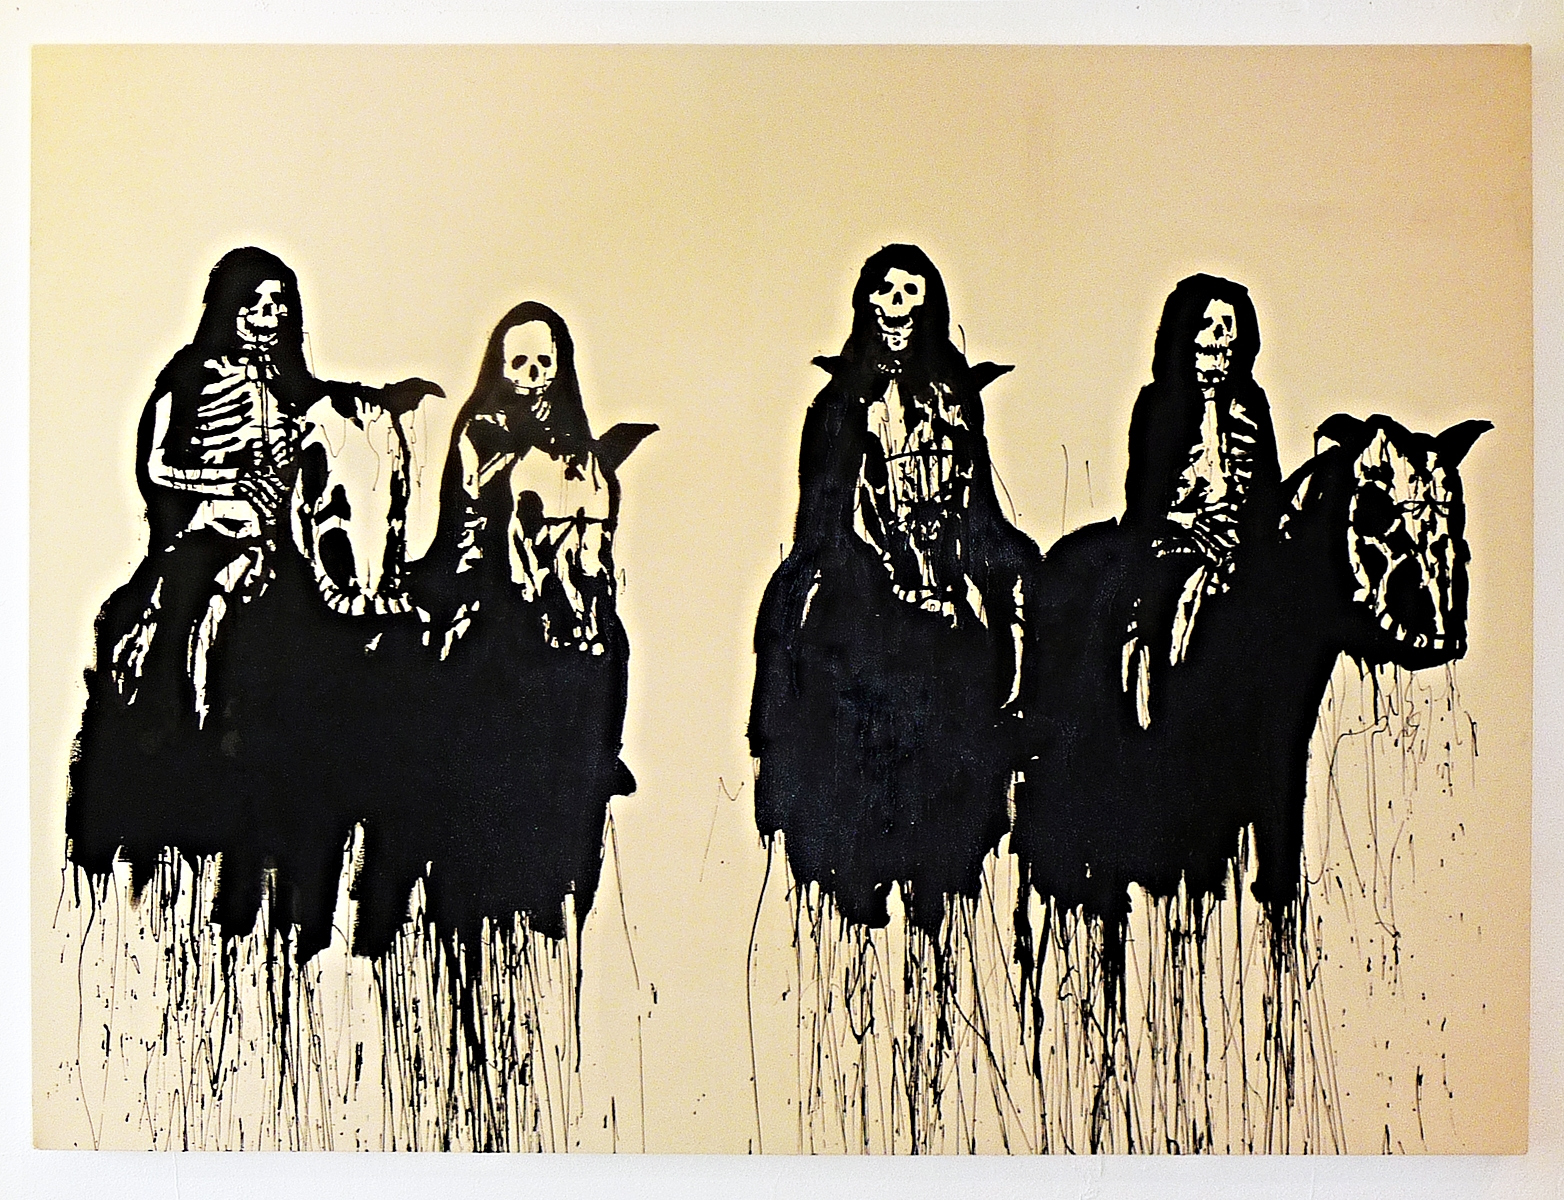 Four Horsemen,  2010 Oil on canvas 72 x 96 inches